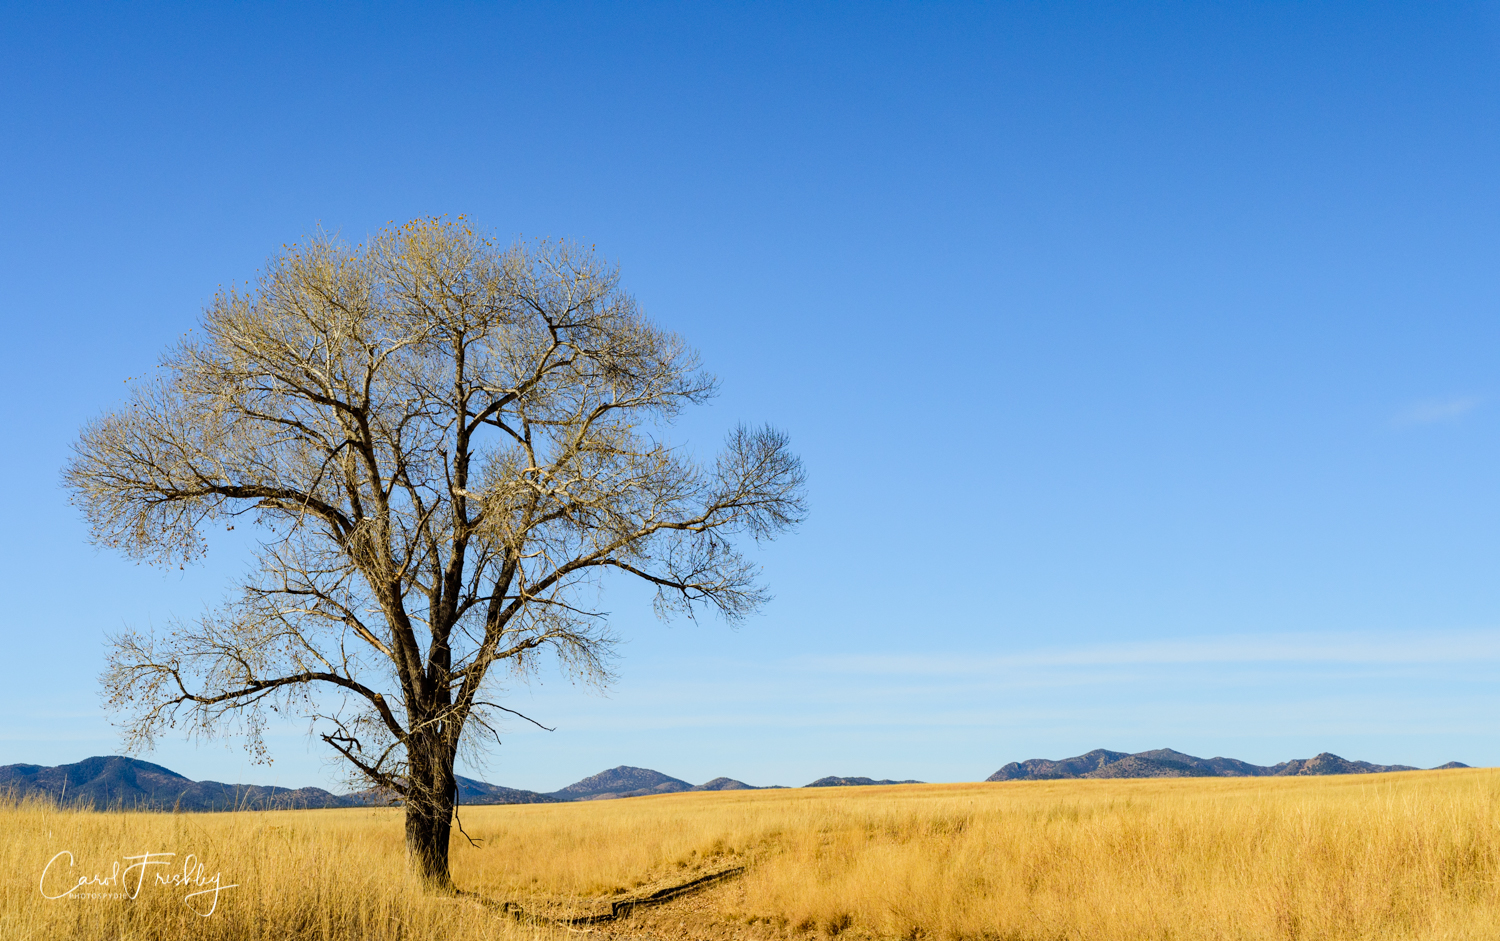 A common sight along the road. I love old bare Cottonwood trees.